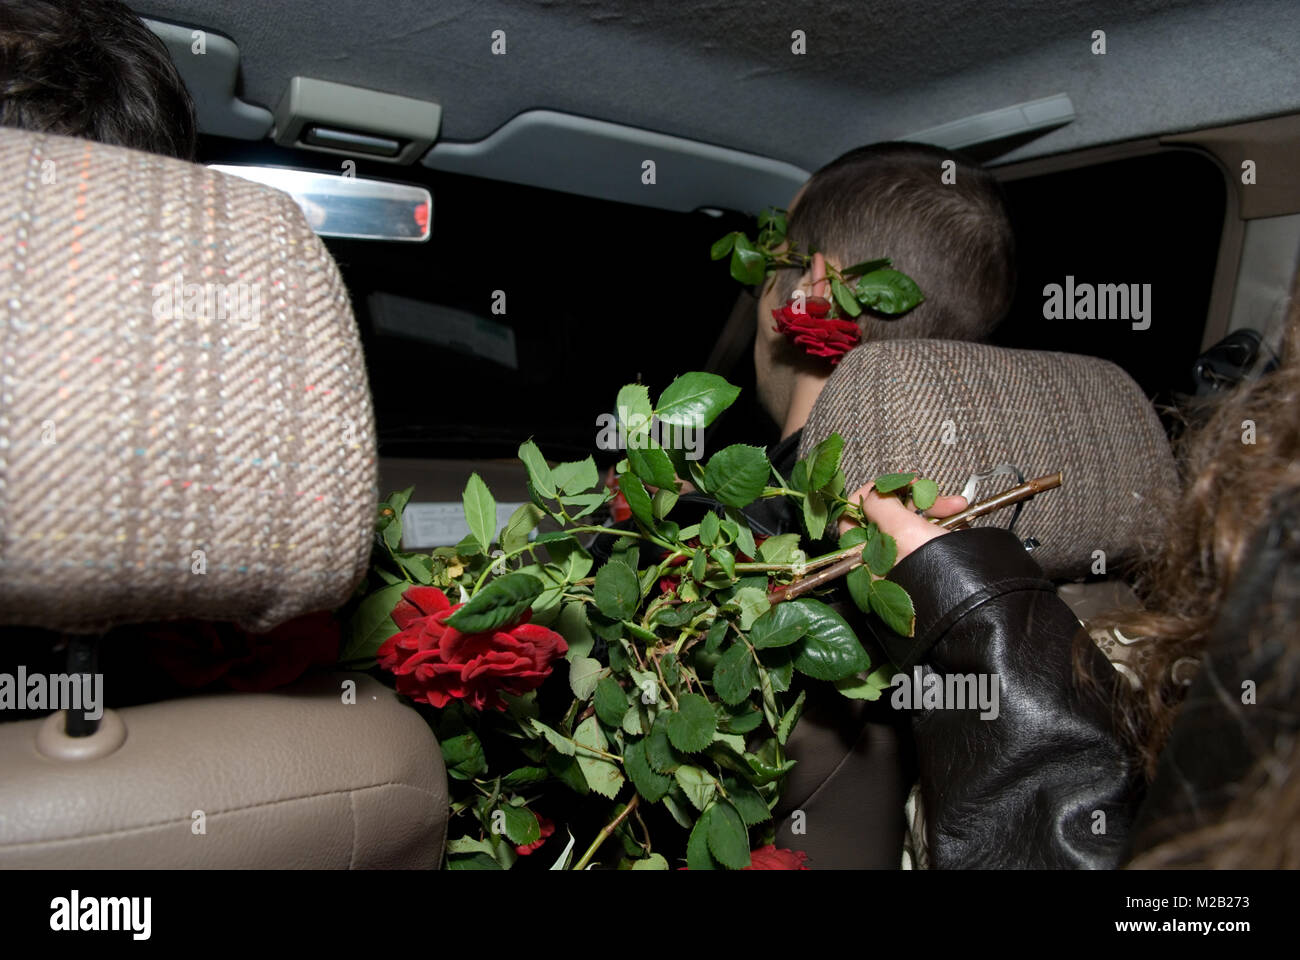 night shot of car interior with a woman holding out a bunch of roses to male passenger who has a rose behind his - Stock Image